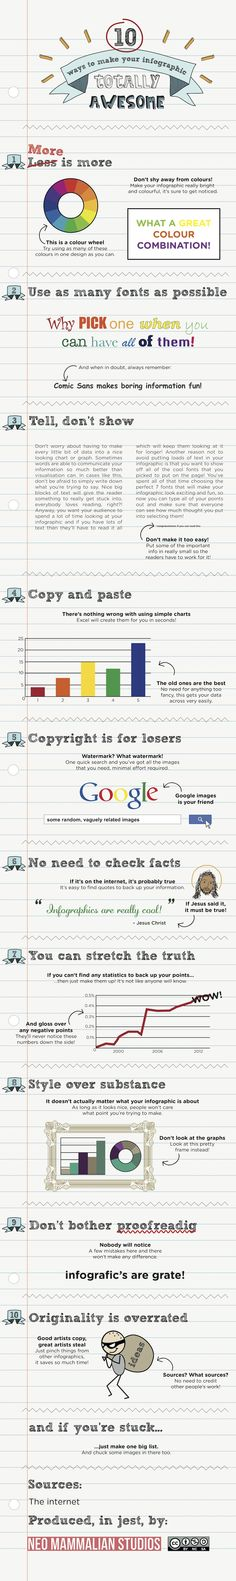 Hilarious. 10 ways to make your infographic totally awesome. (students this is a joke)